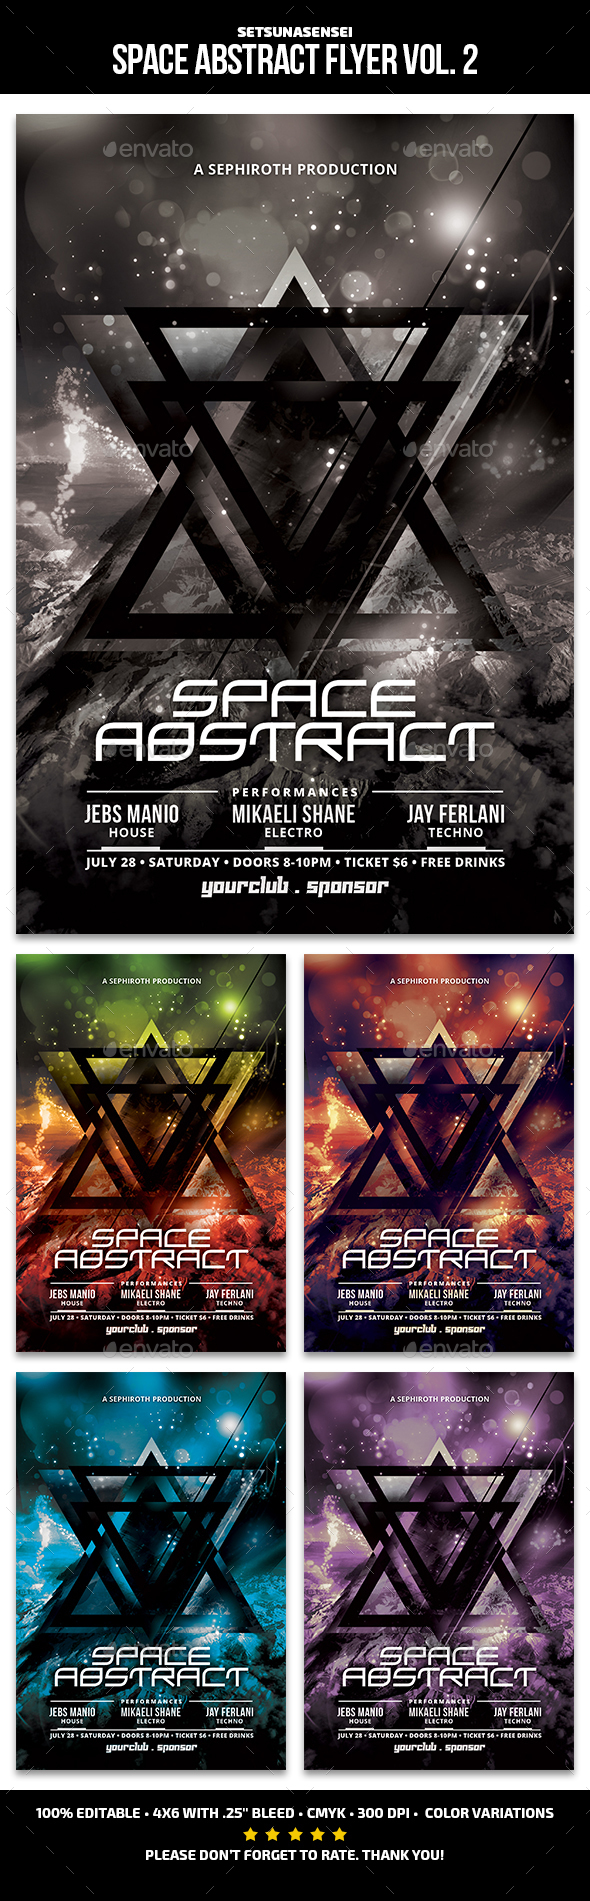 Space Abstract Flyer Vol. 2 - Clubs & Parties Events